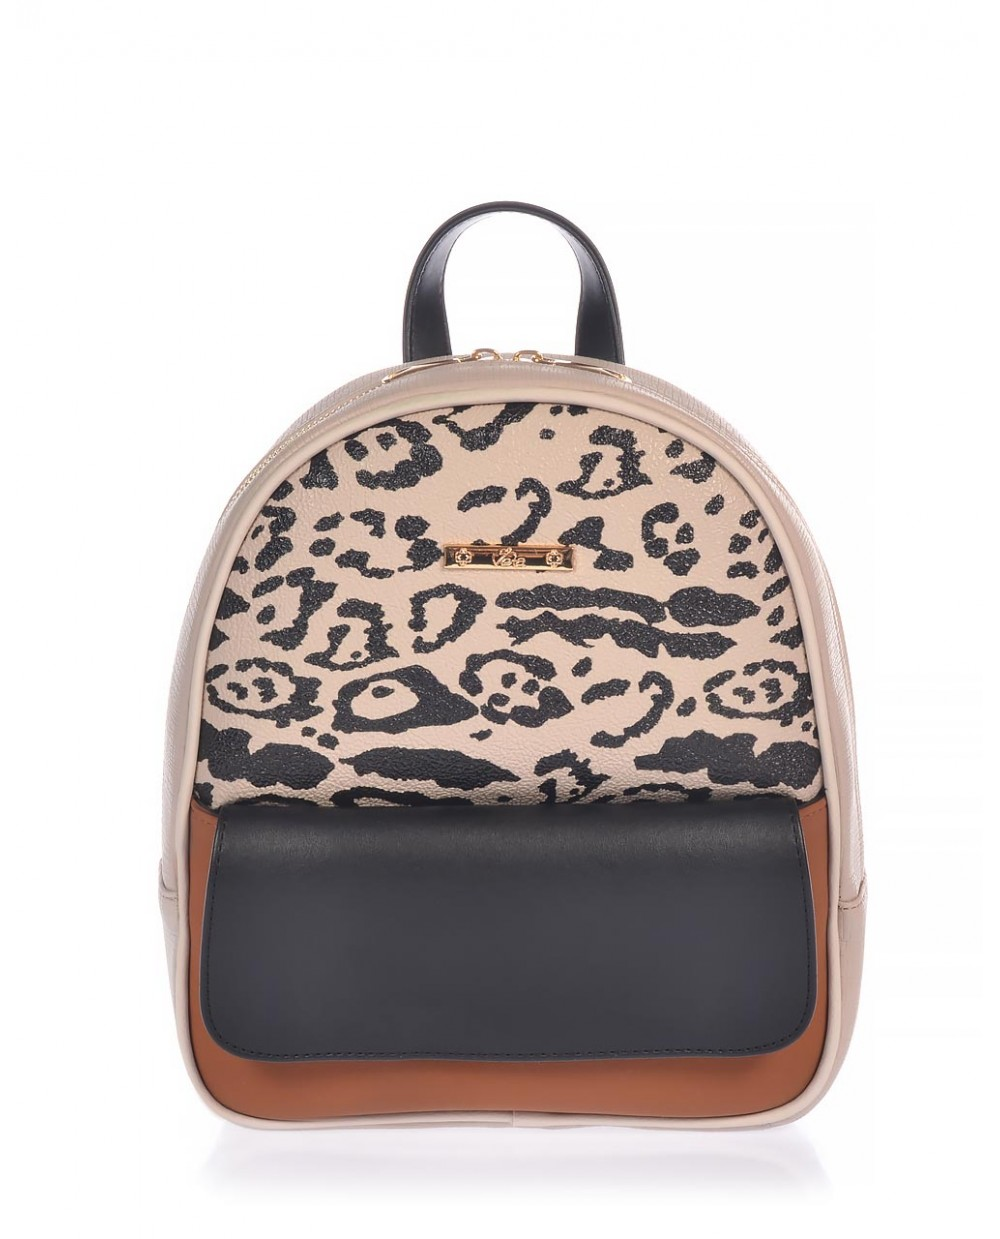 BACKPACK 5075